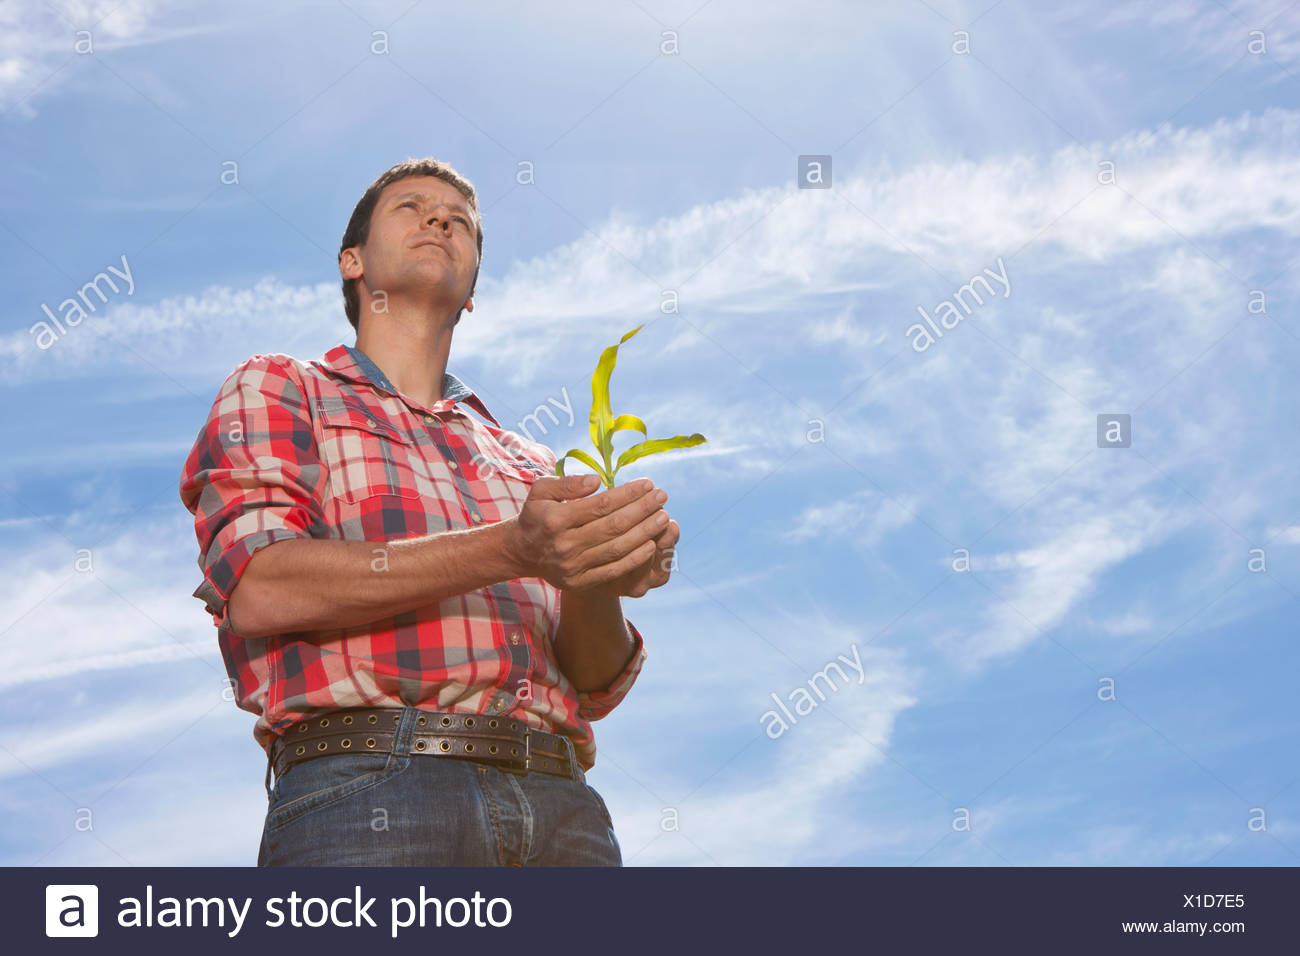 Farmer cupping corn seedling - Stock Image